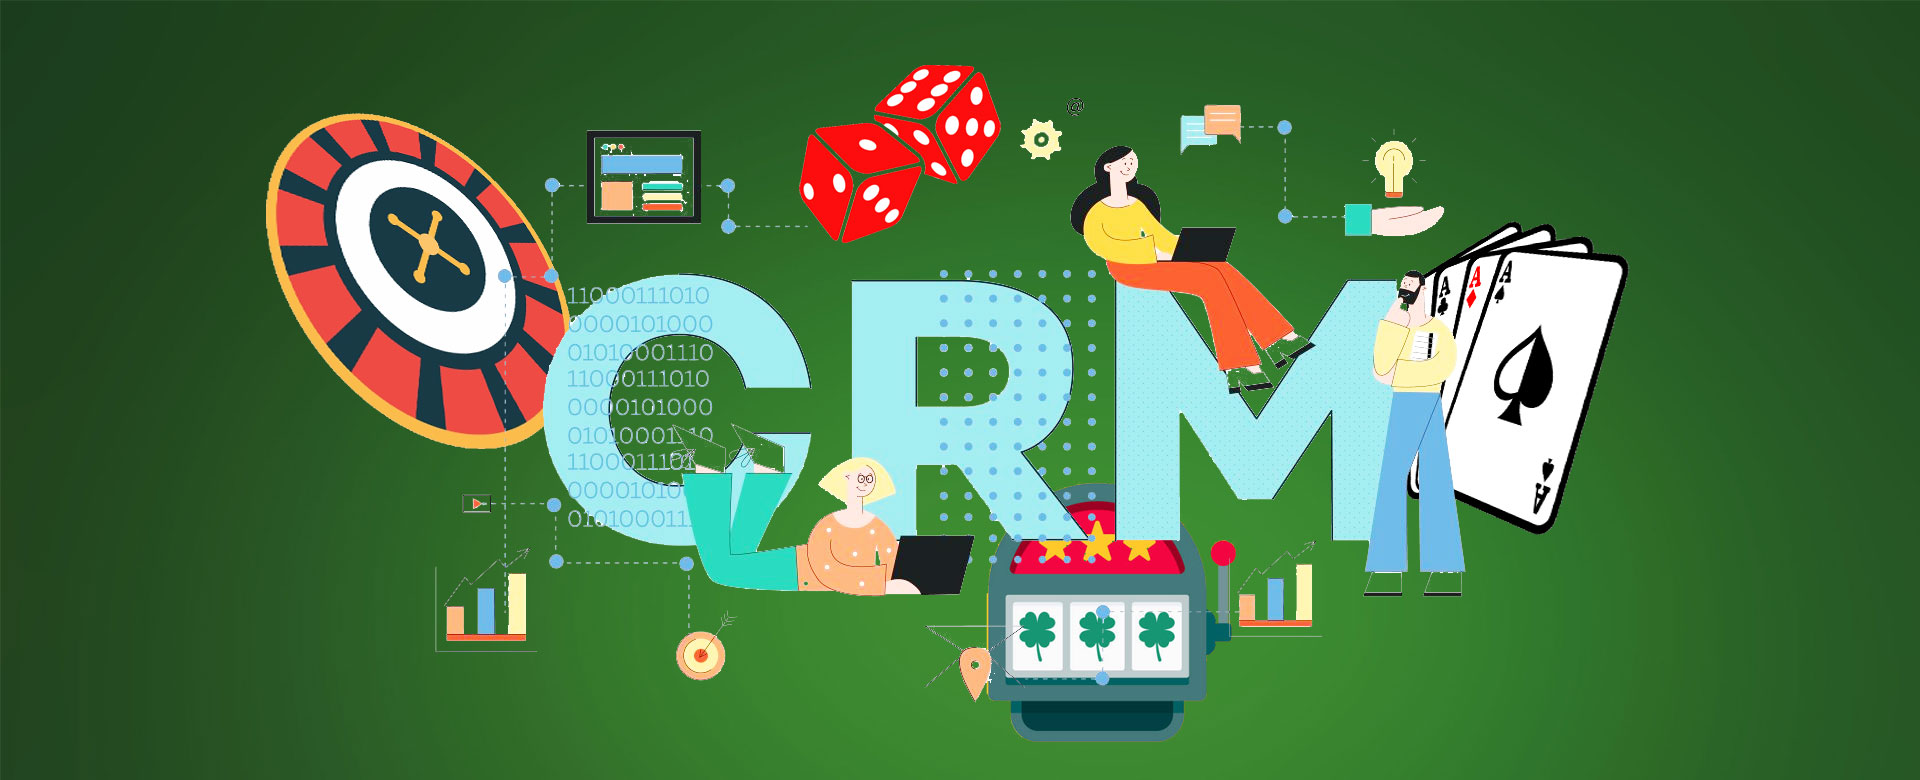 CRM Strategies that work